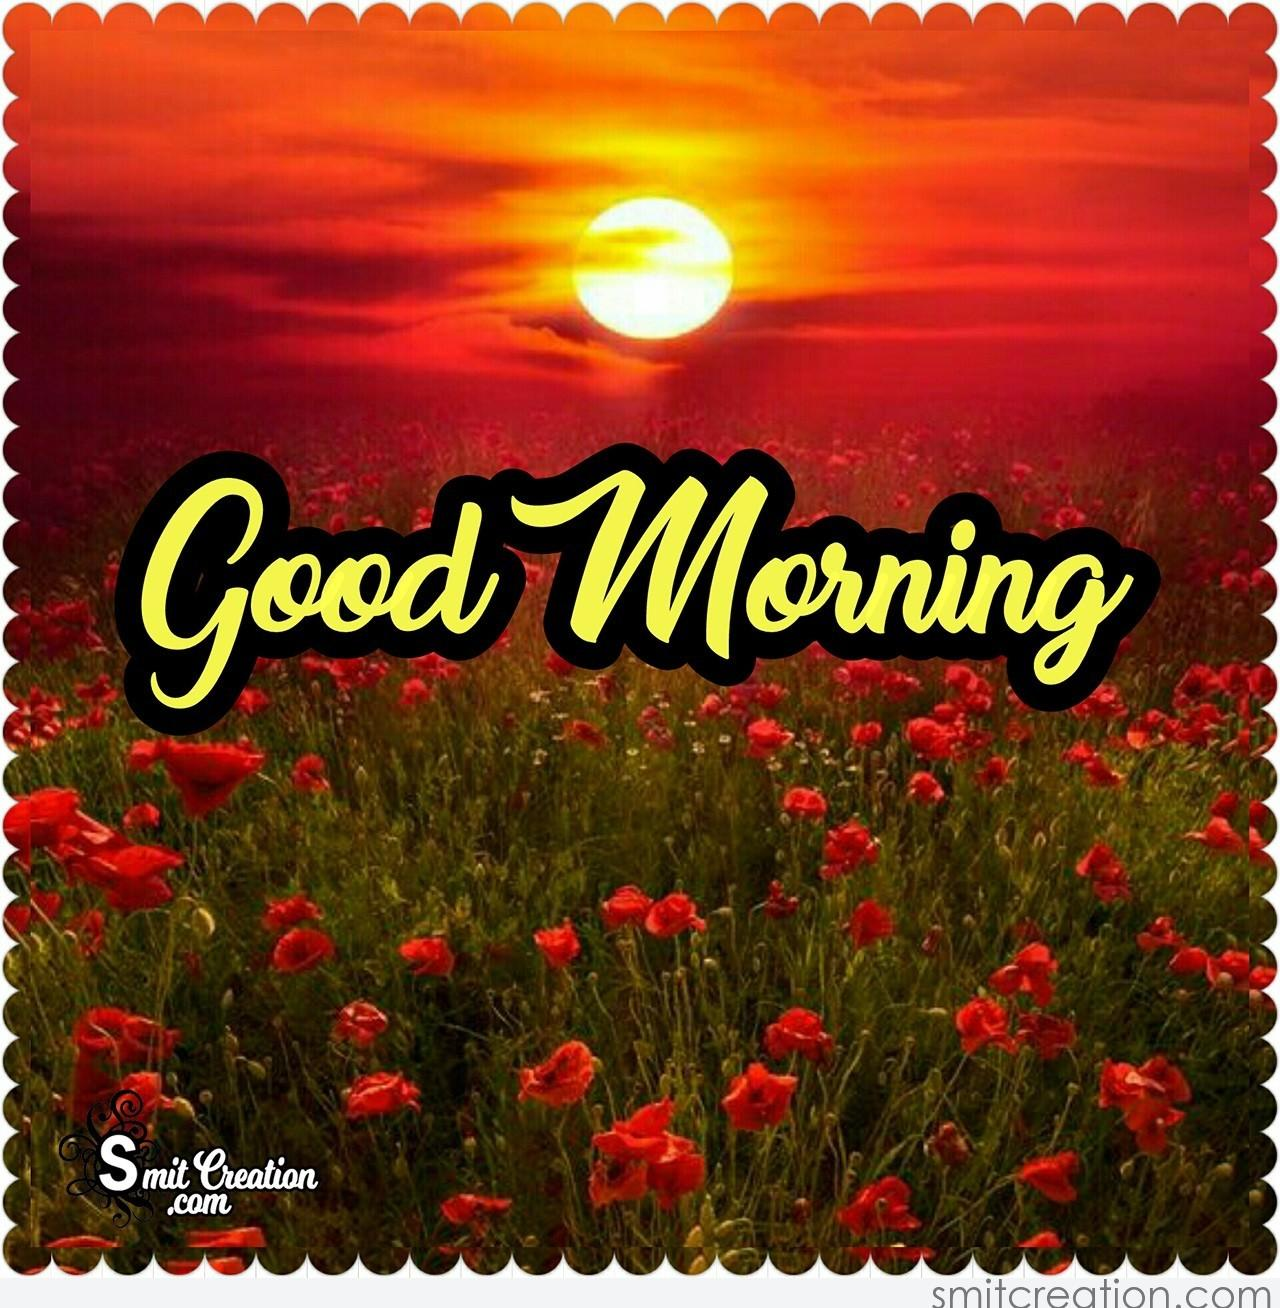 Good Morning Pictures And Graphics Smitcreationcom